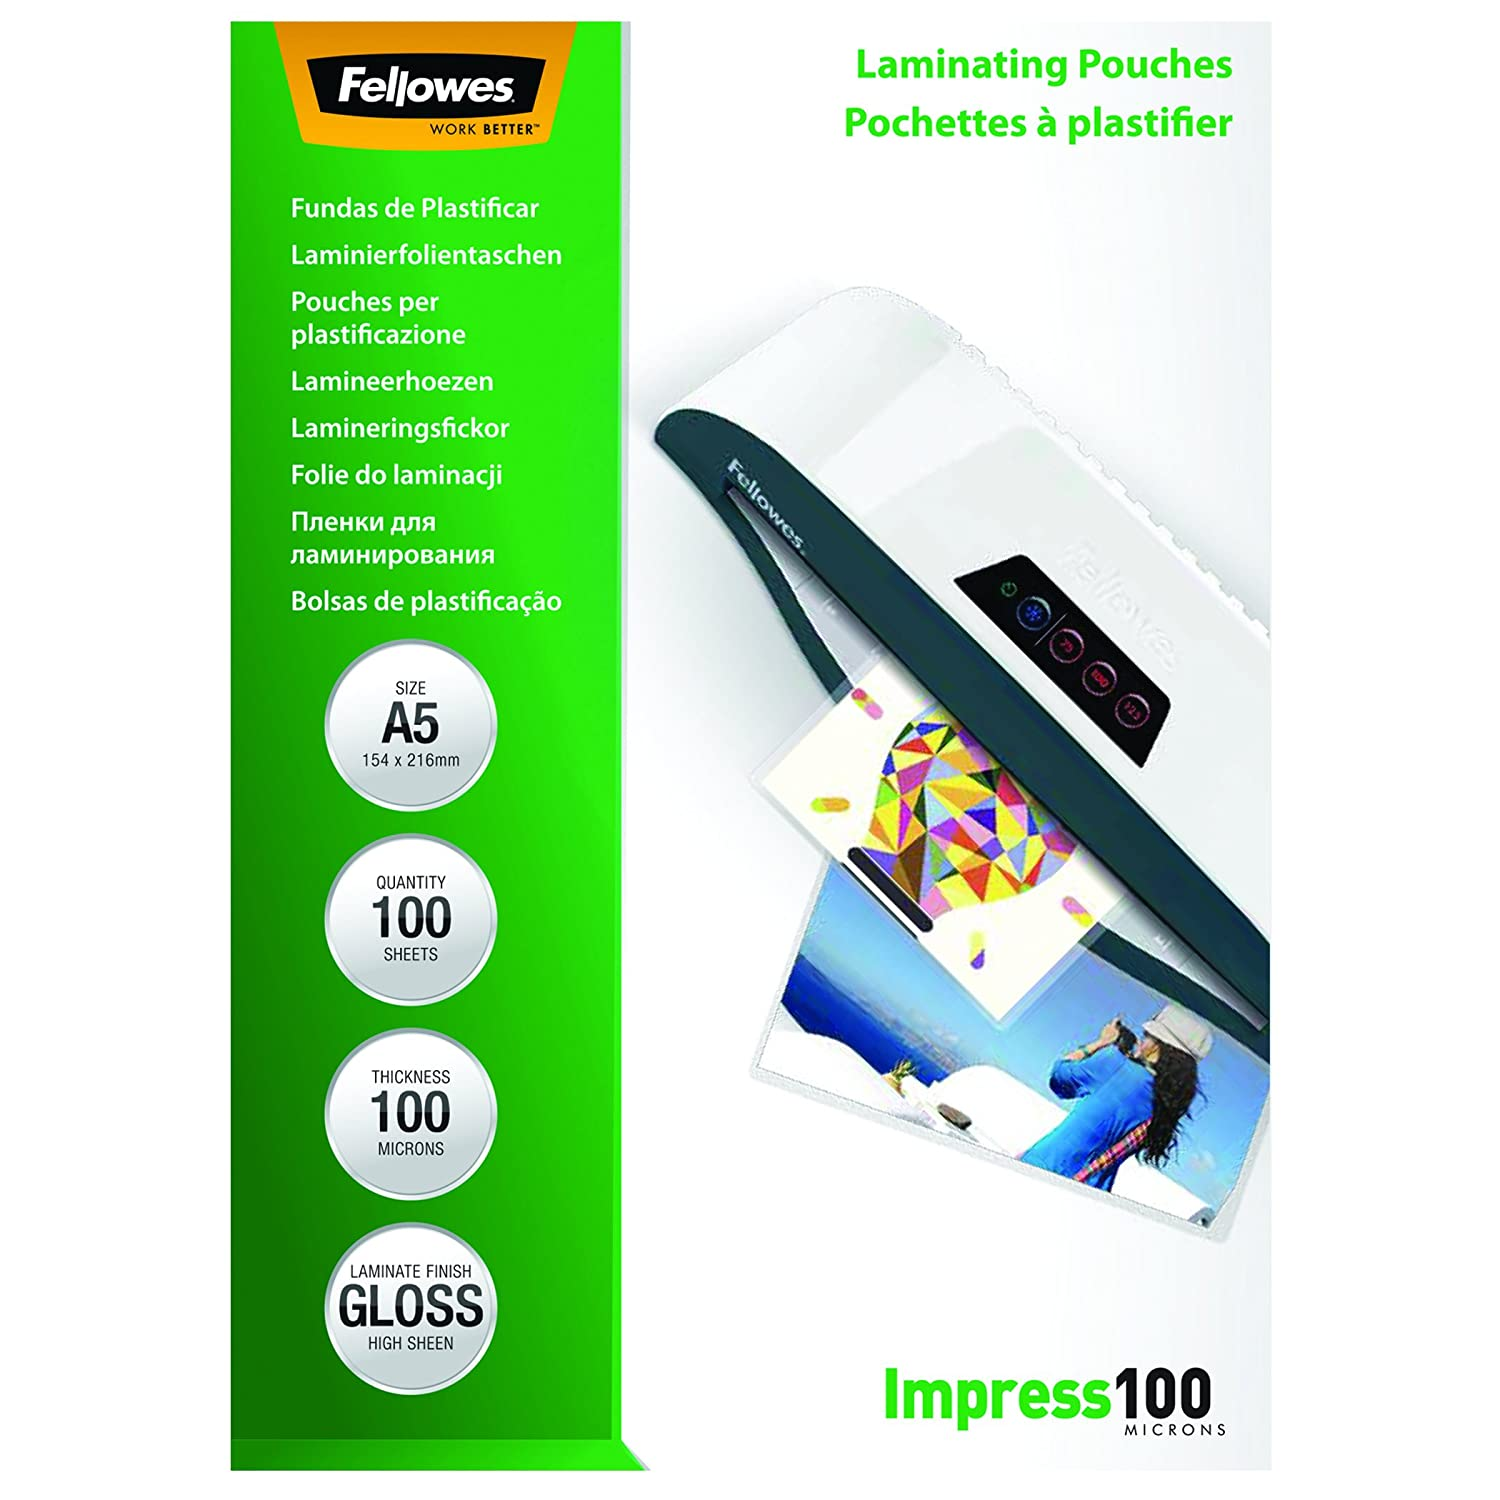 Fellowes 5351002 - Pack de 100 fundas para plastificar, A5, acabado brillo, 100 micras